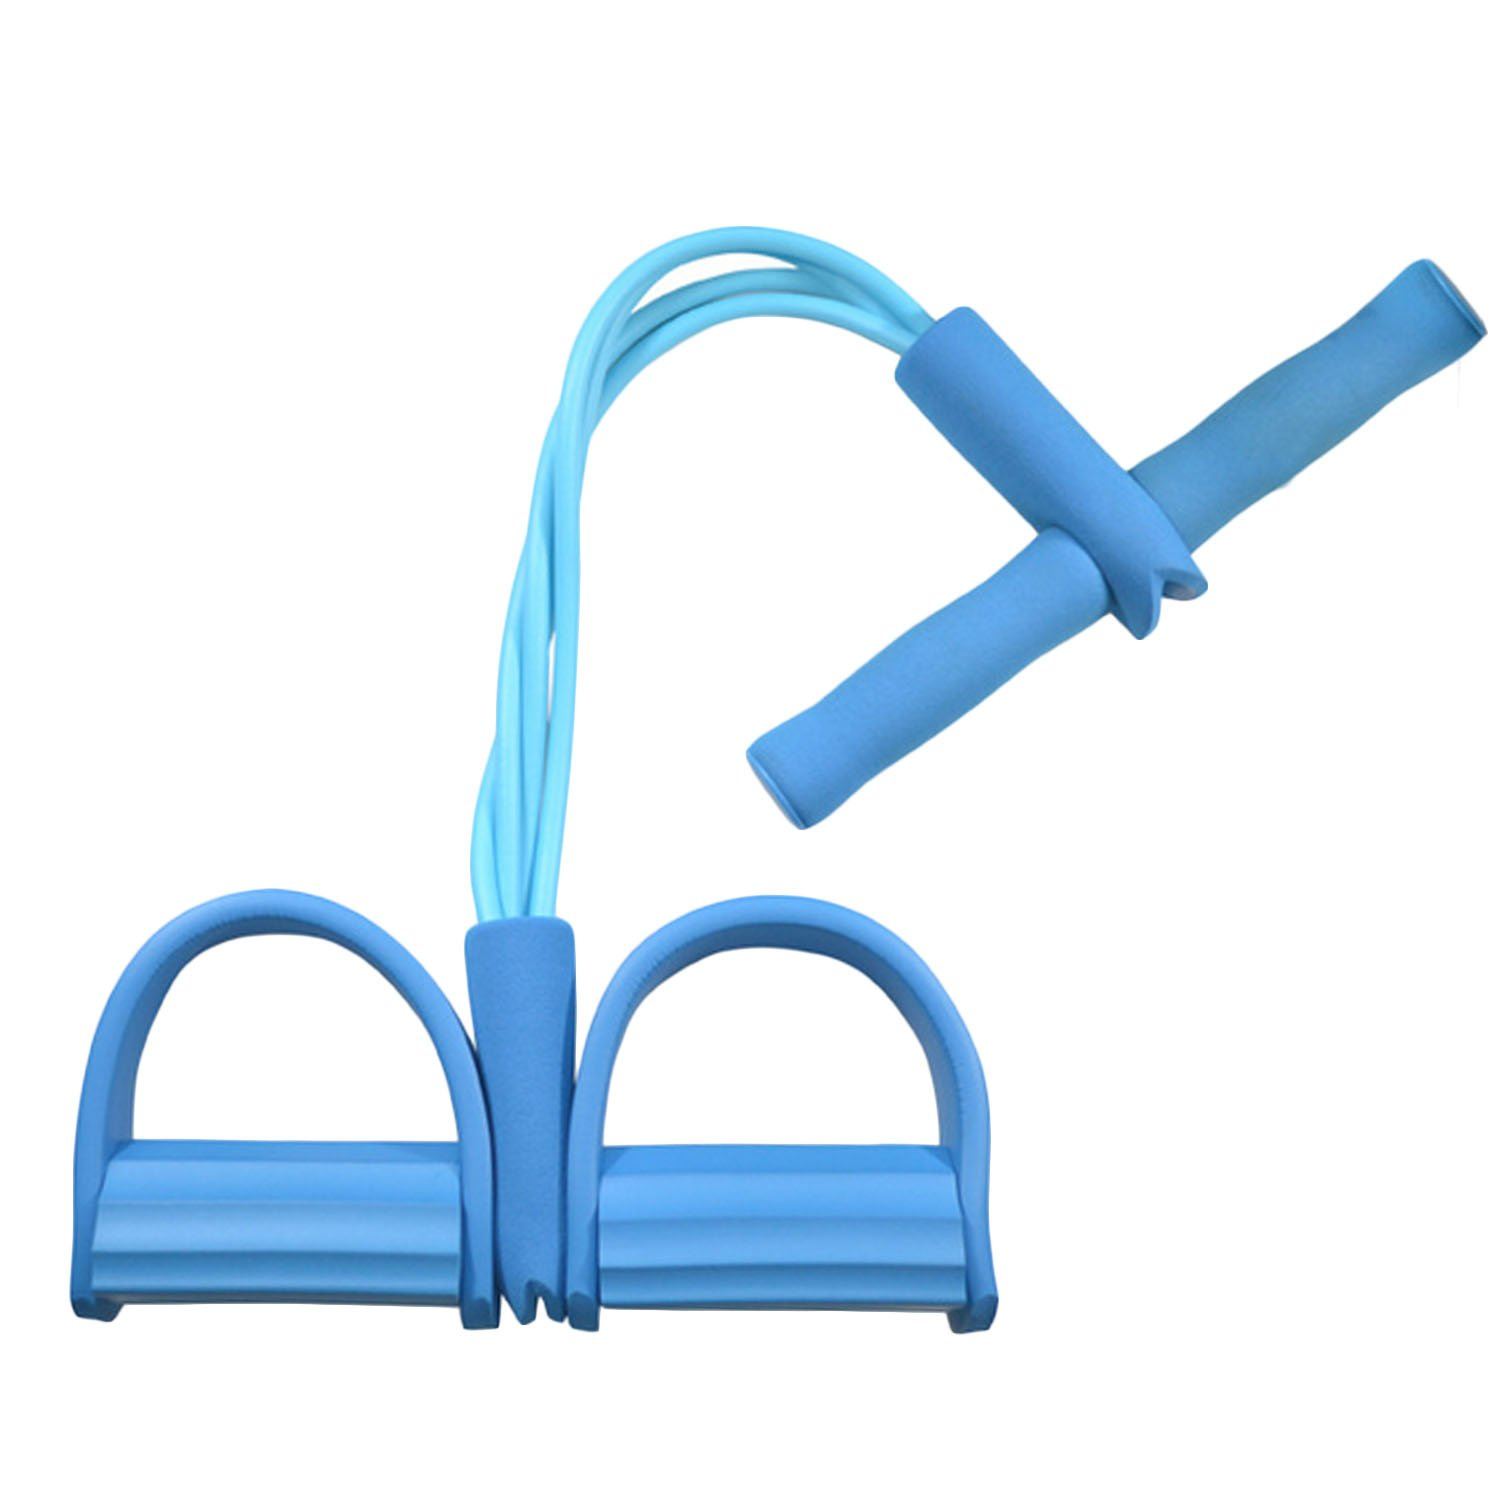 Multifunction Resistance Training 4 Tube Leg Exerciser Pull Rope Bands Yoga Fitness Foot Pedal Pull Ropes Sit Up Bodybuilding Expander For Home Gym